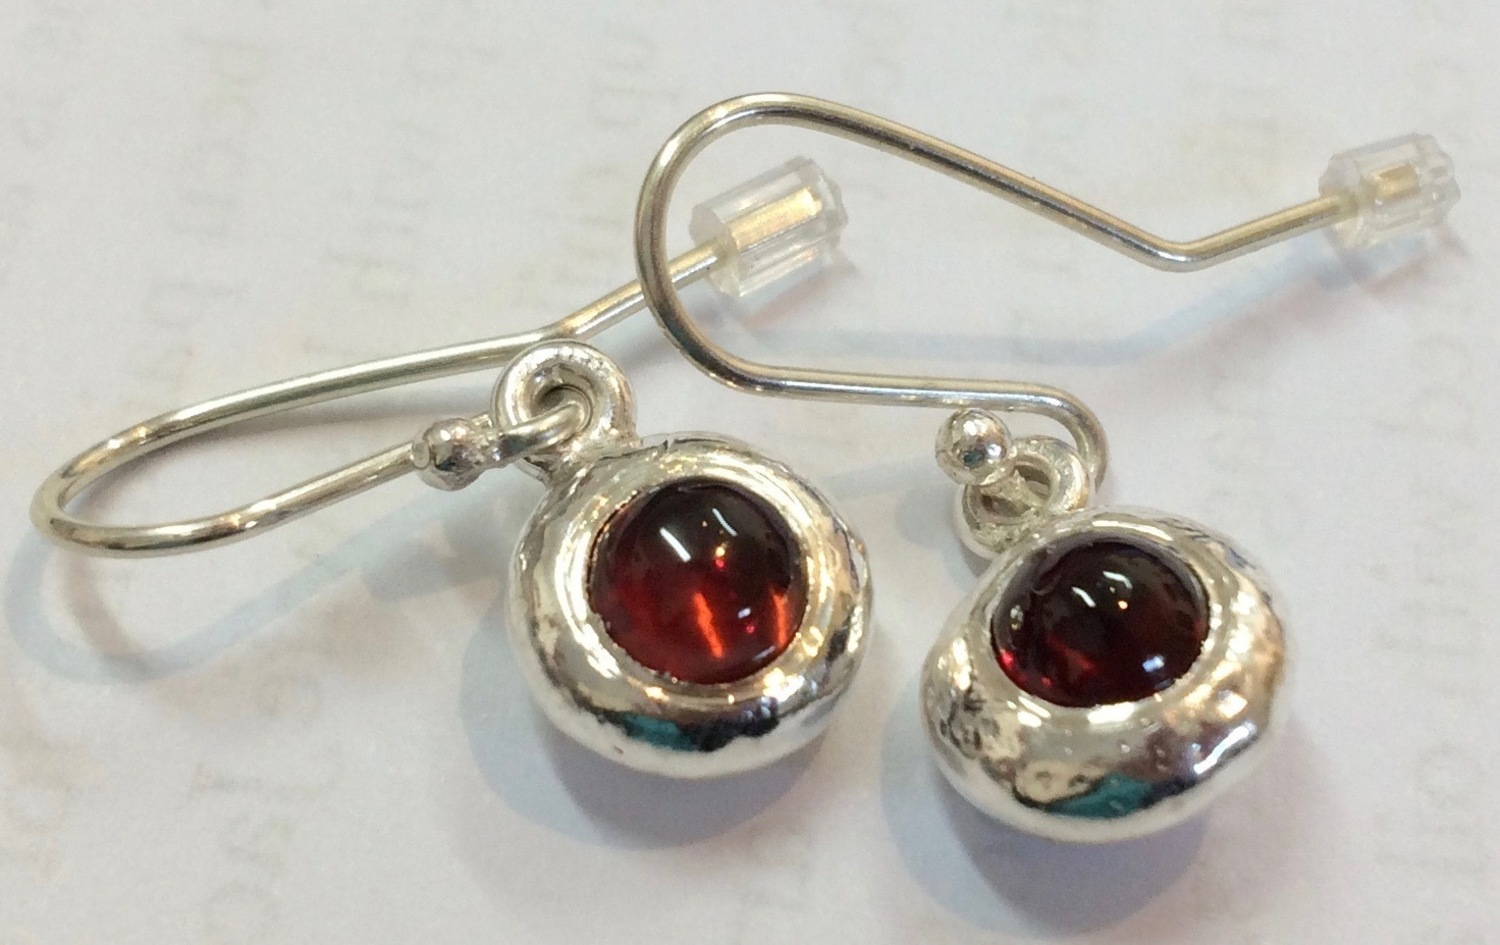 Garnet ingot drop earrings